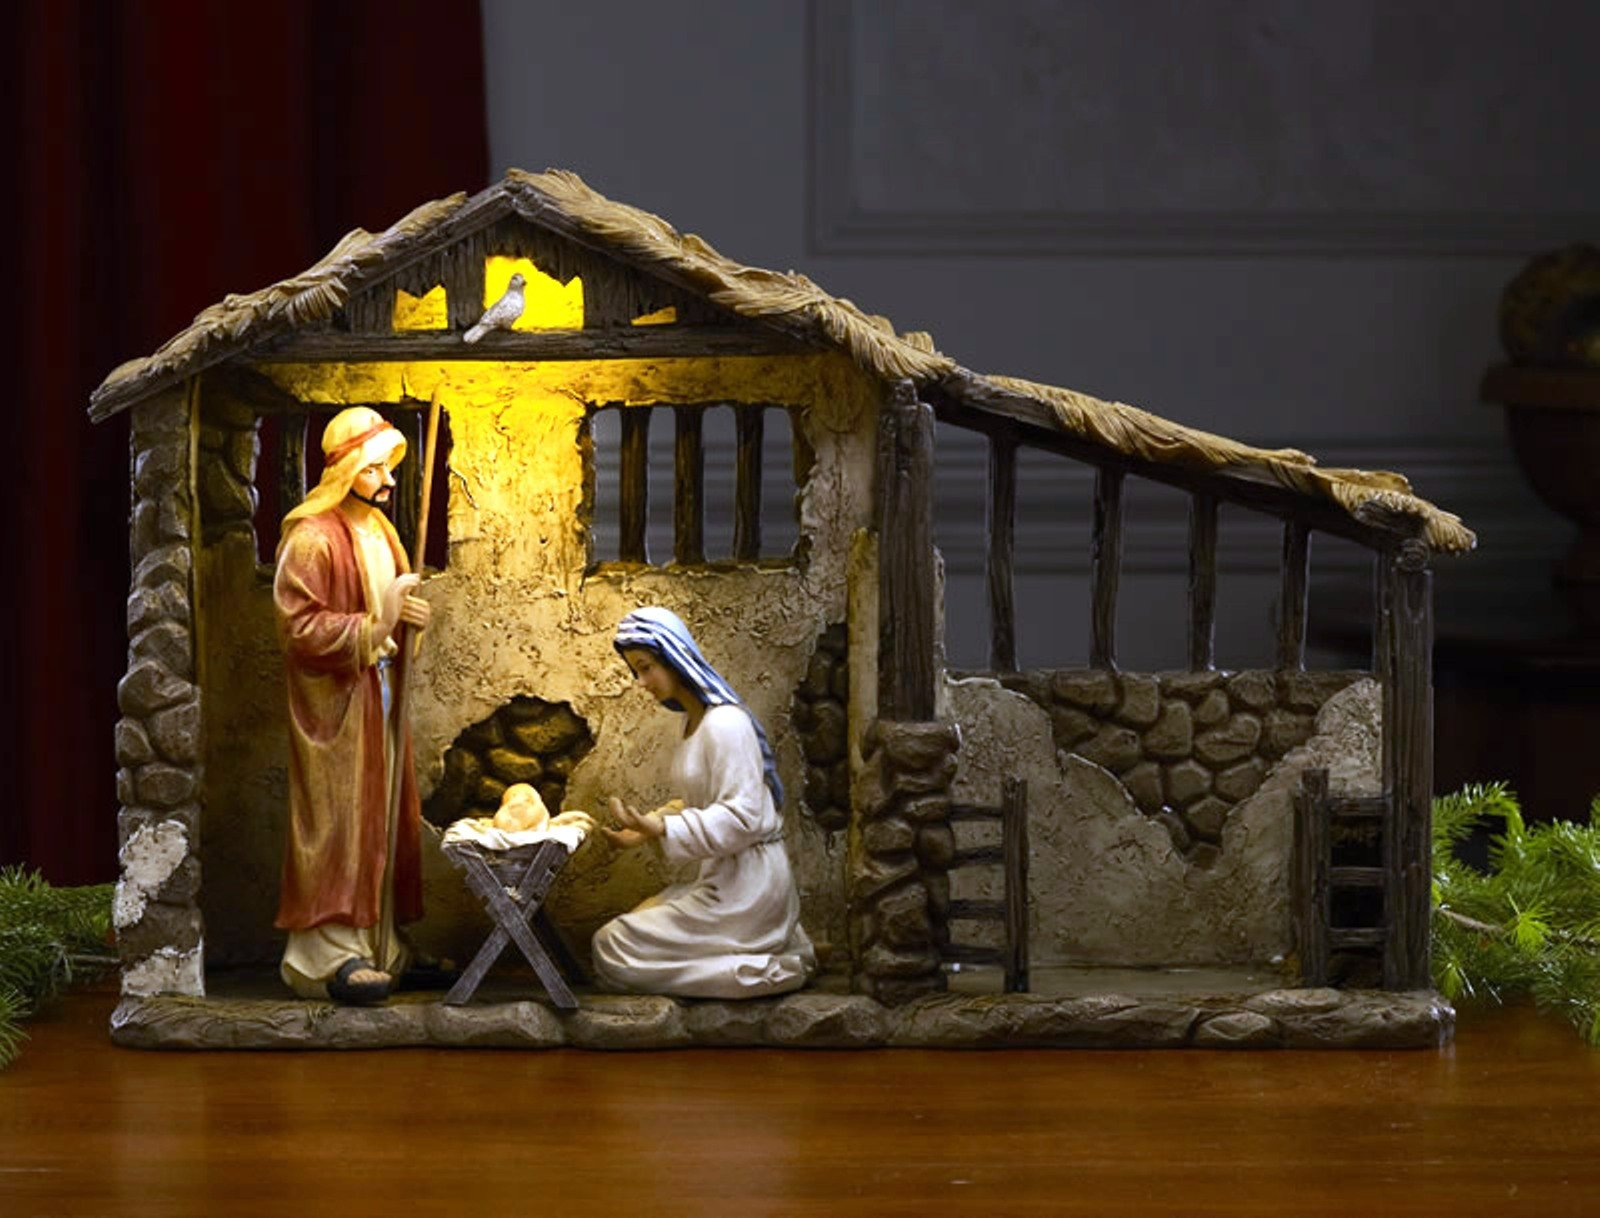 7 Inch Figures Real Life Nativity Full Complete Set - Includes All People, Lighted Manger, Chest of Gold, Frankincense & Myrrh by Three Kings Gifts (Image #1)